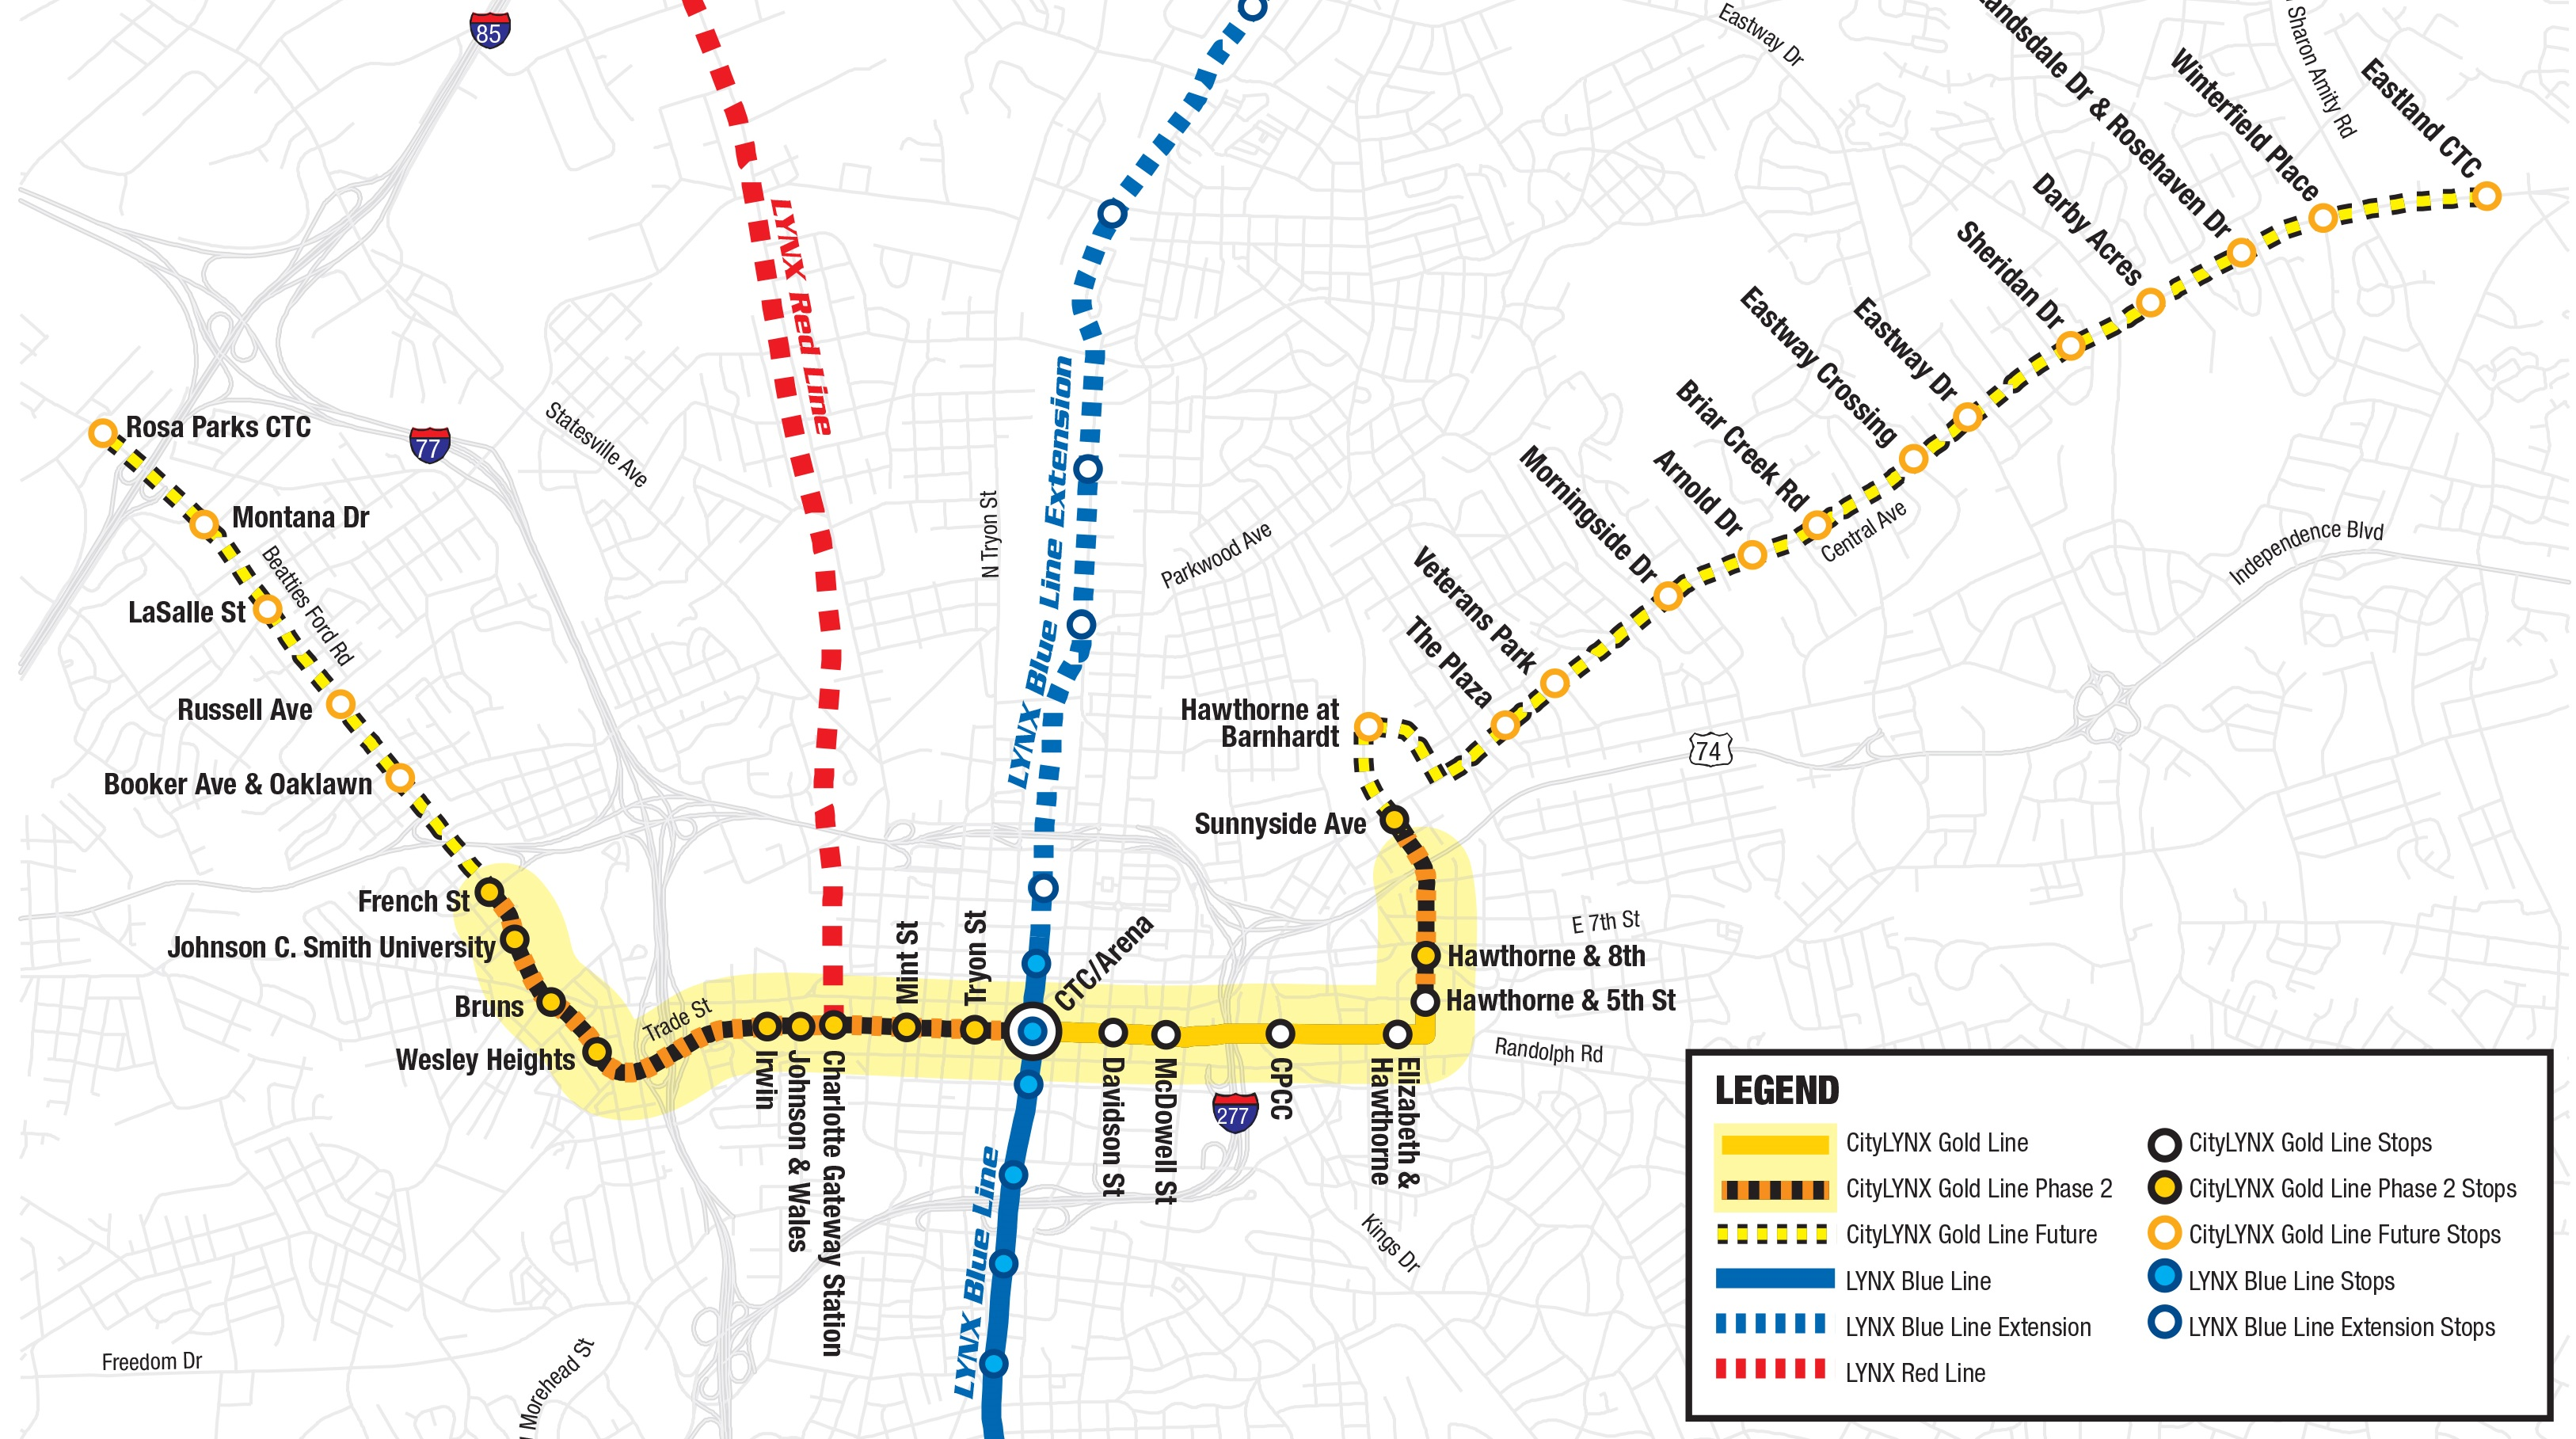 Gold Line Map CityLYNX Gold Line